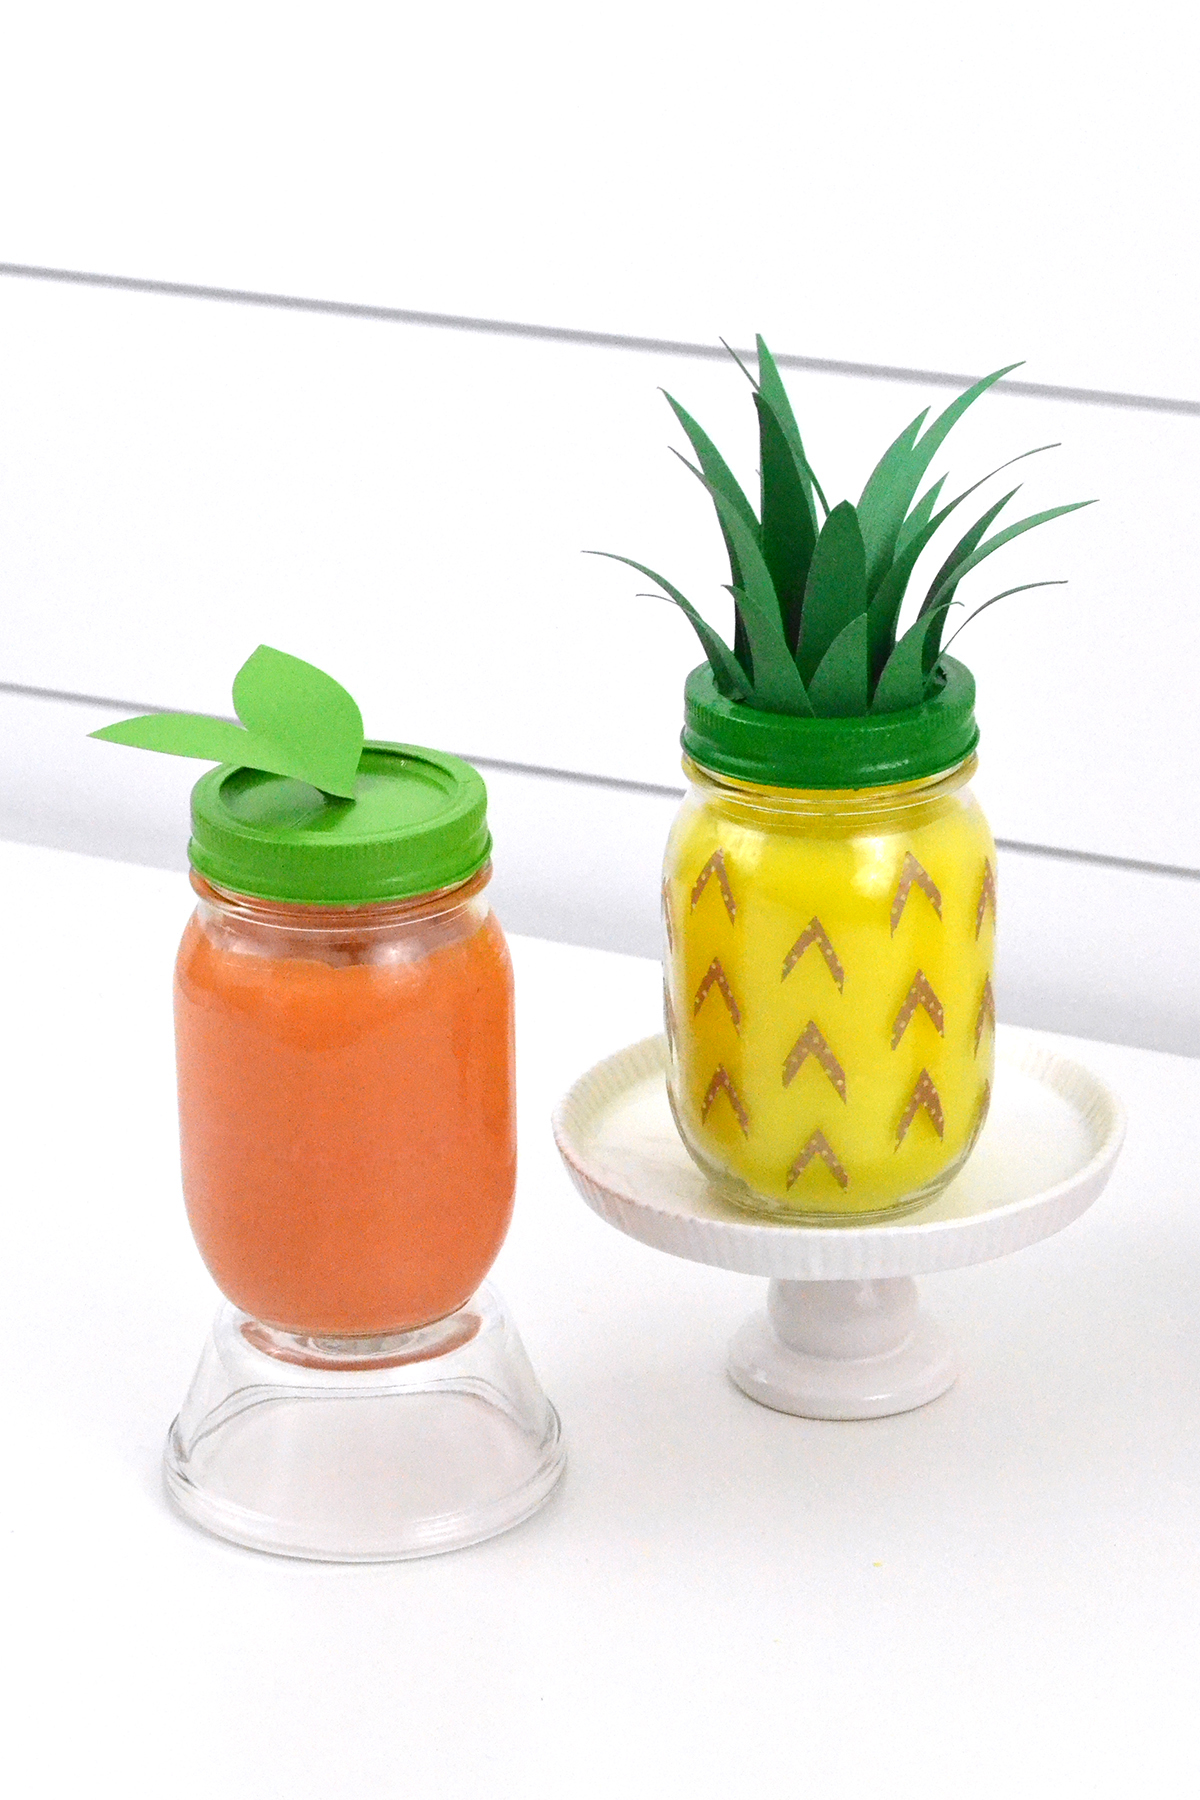 Tropical Fruit Scented Candles by Aly Dosdall for We R Memory Keepers